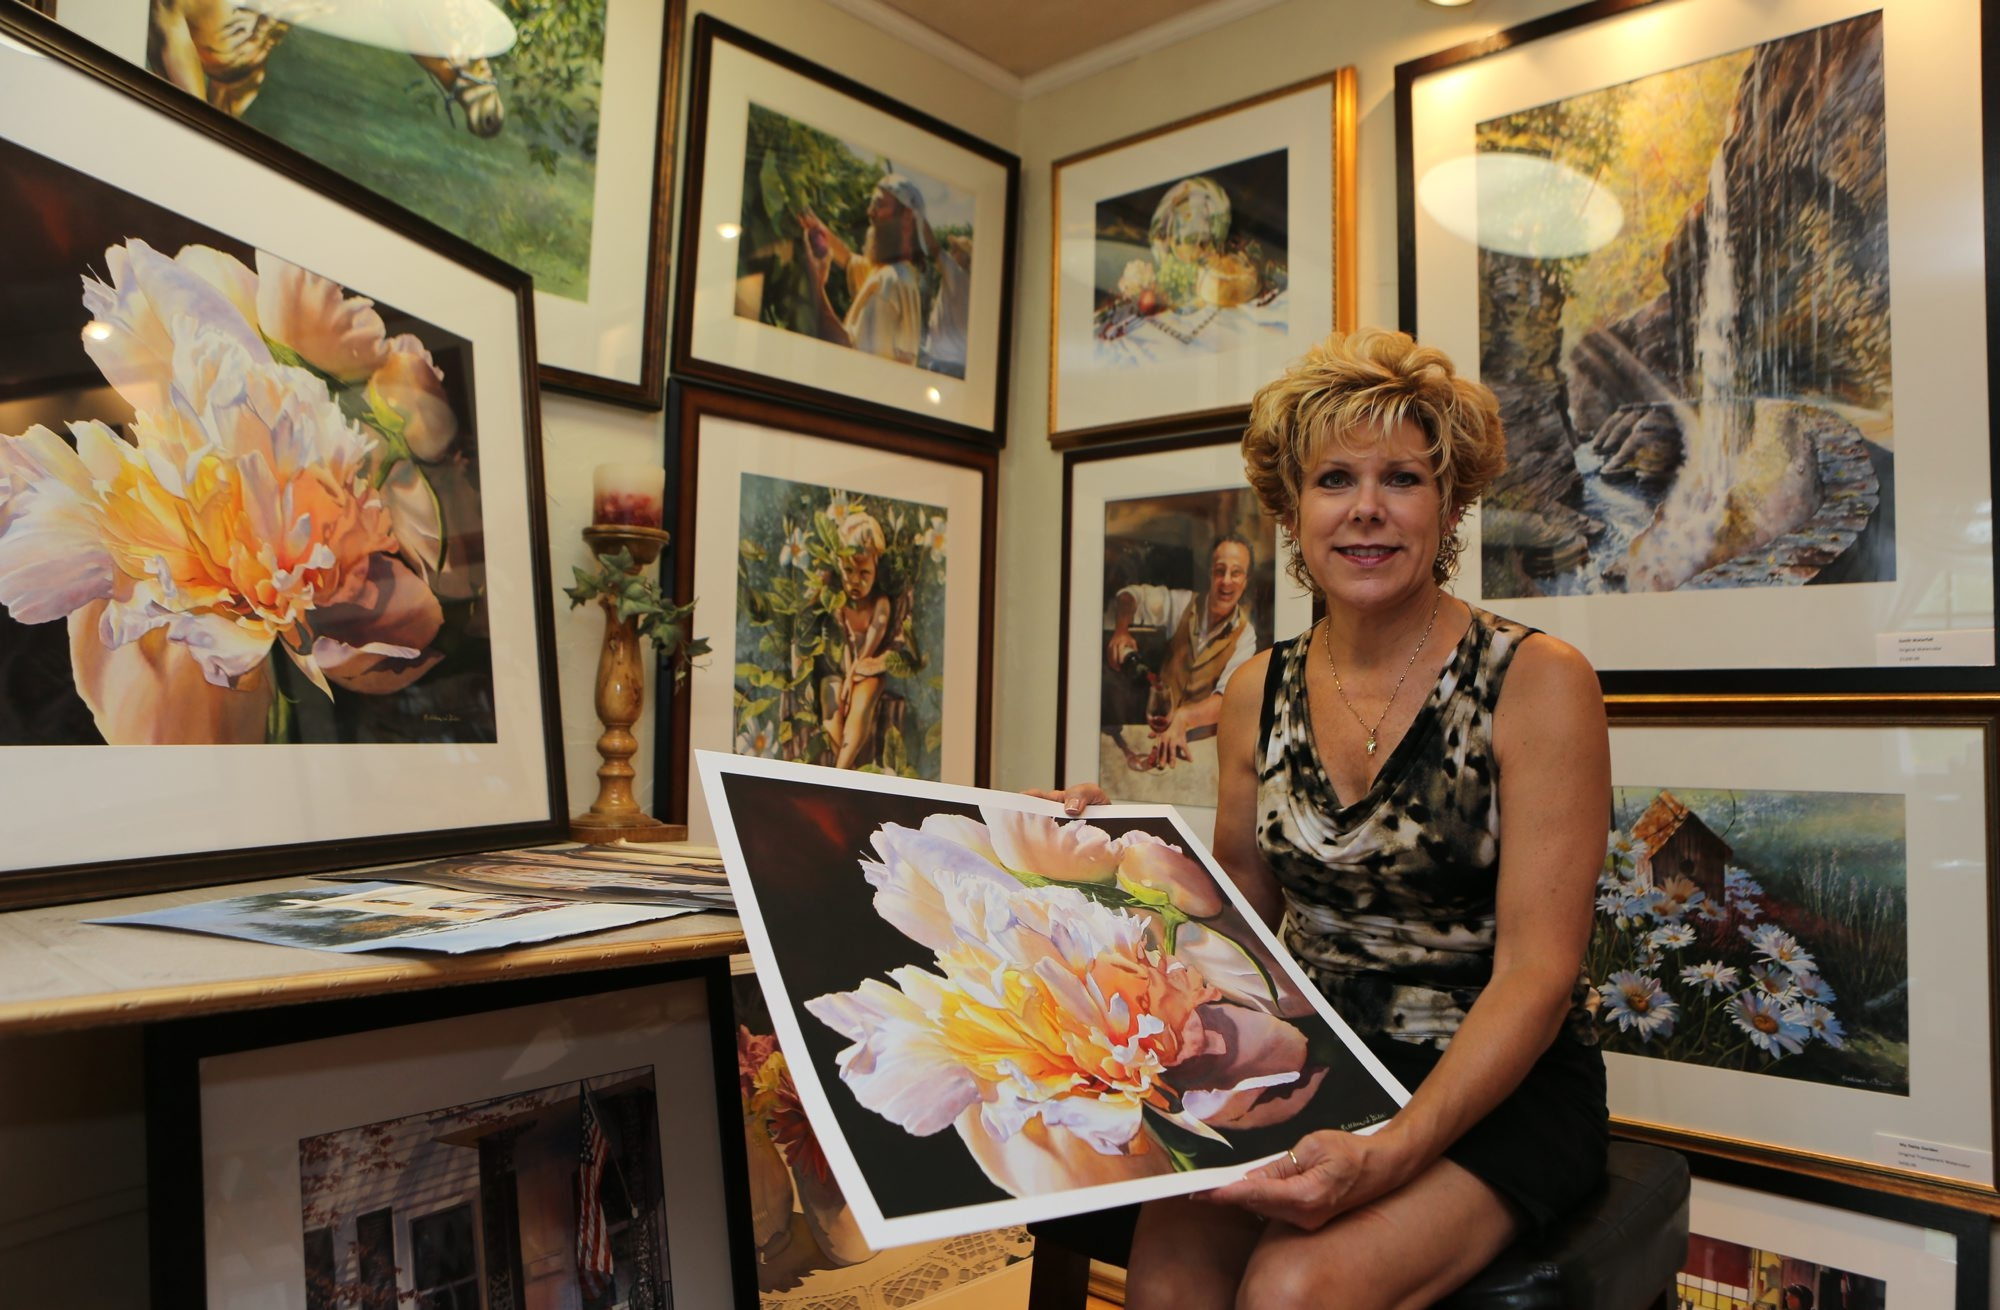 Watercolor artist magazine subscription - Artist Kathleen Giles Holds A Watercolor Painting Titled Peonies In The Spotlight One